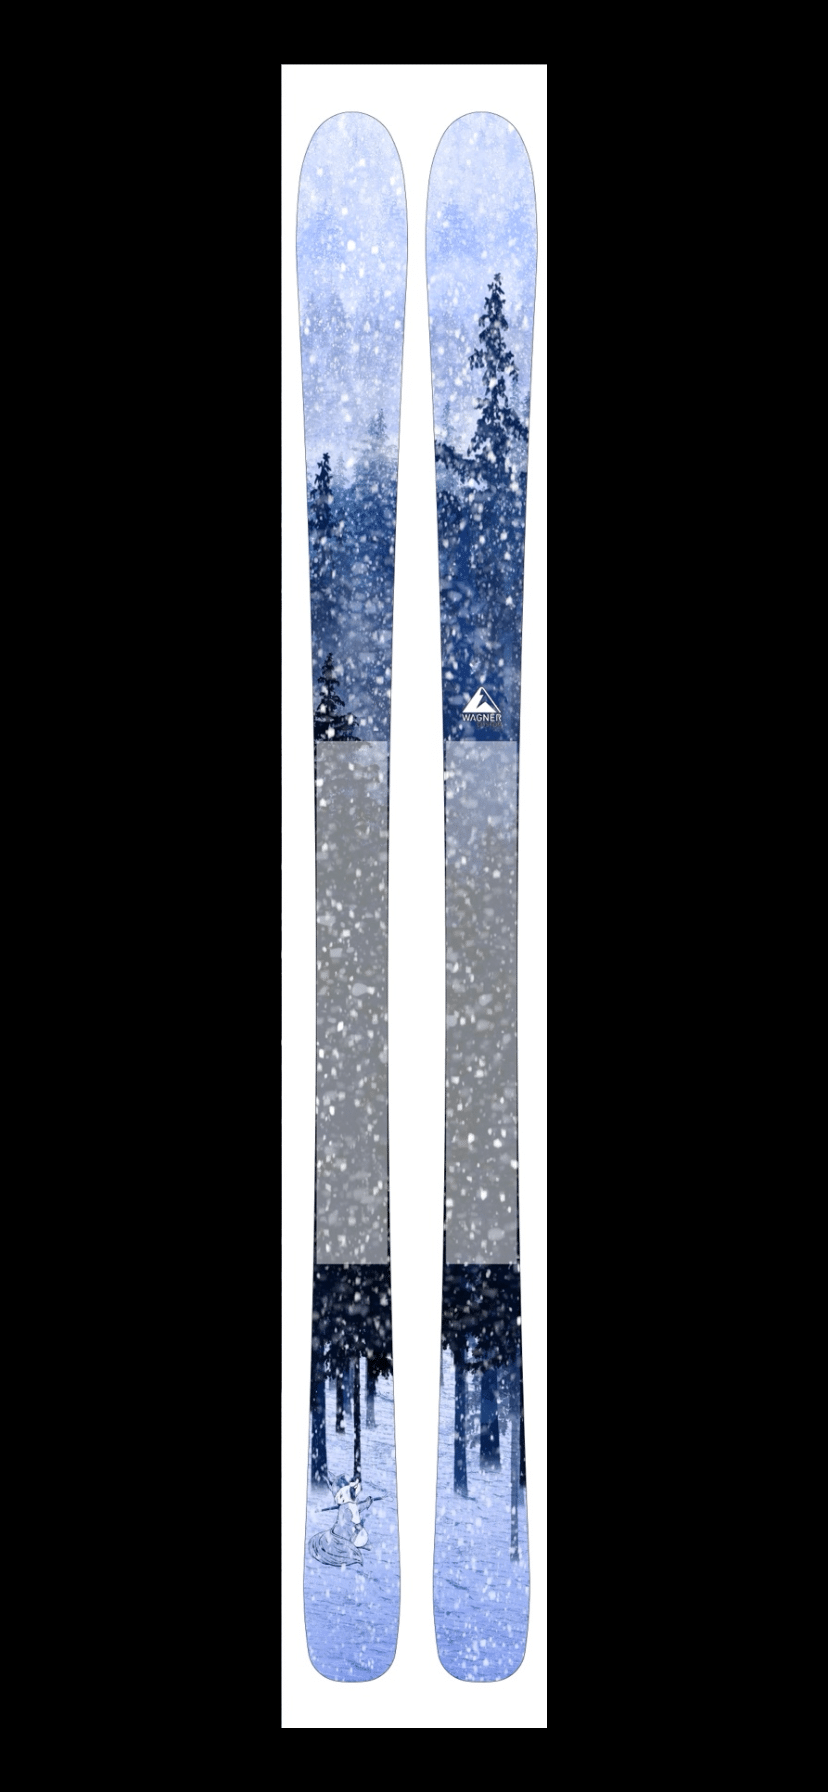 Cindy's Graphic for Wagner Skis